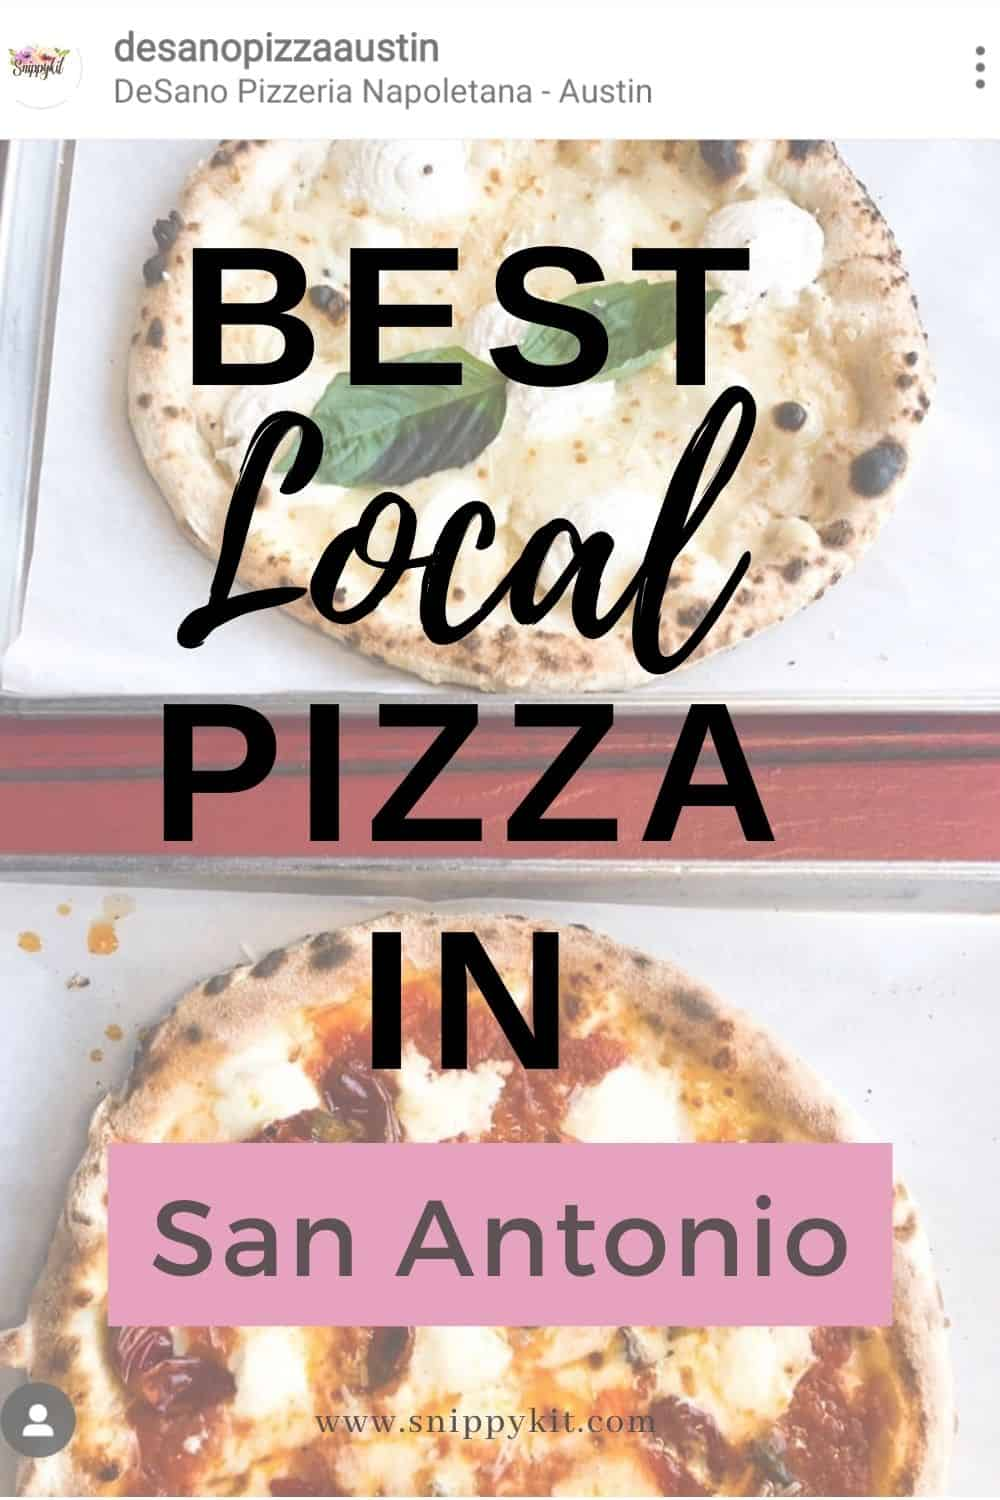 Find a wide variety of pizza styles throughout the city that will leave you satisified. Check out our list of the Best Pizza in San Antonio.